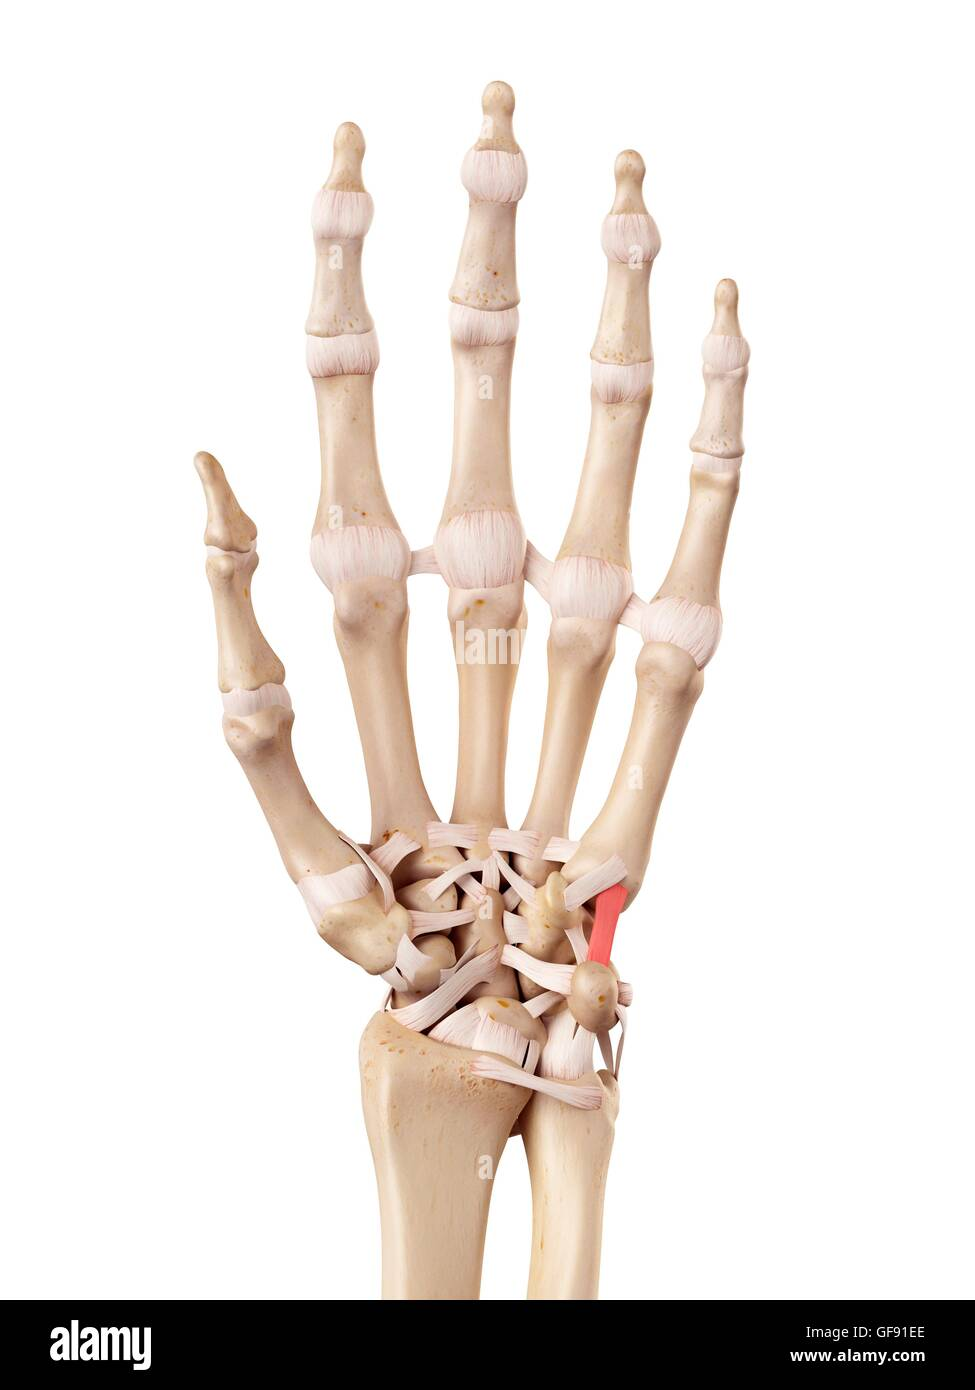 Human Fingers Anatomy Stockfotos & Human Fingers Anatomy Bilder - Alamy